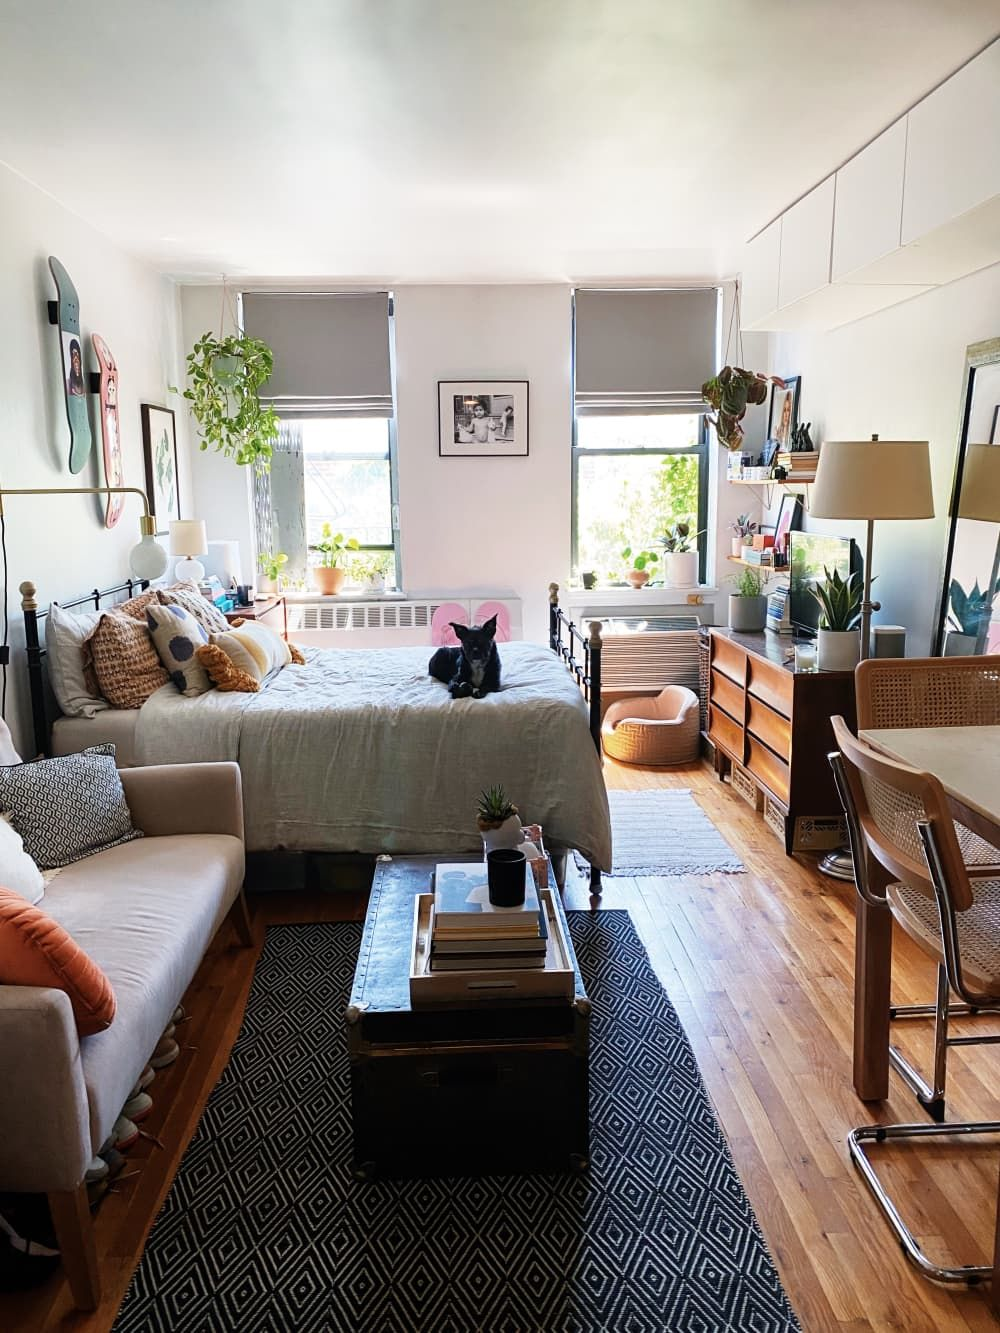 Photo of Before & After: A 350-Square-Foot Studio's Renter-Friendly Remodel Maximized Its Storage Potential